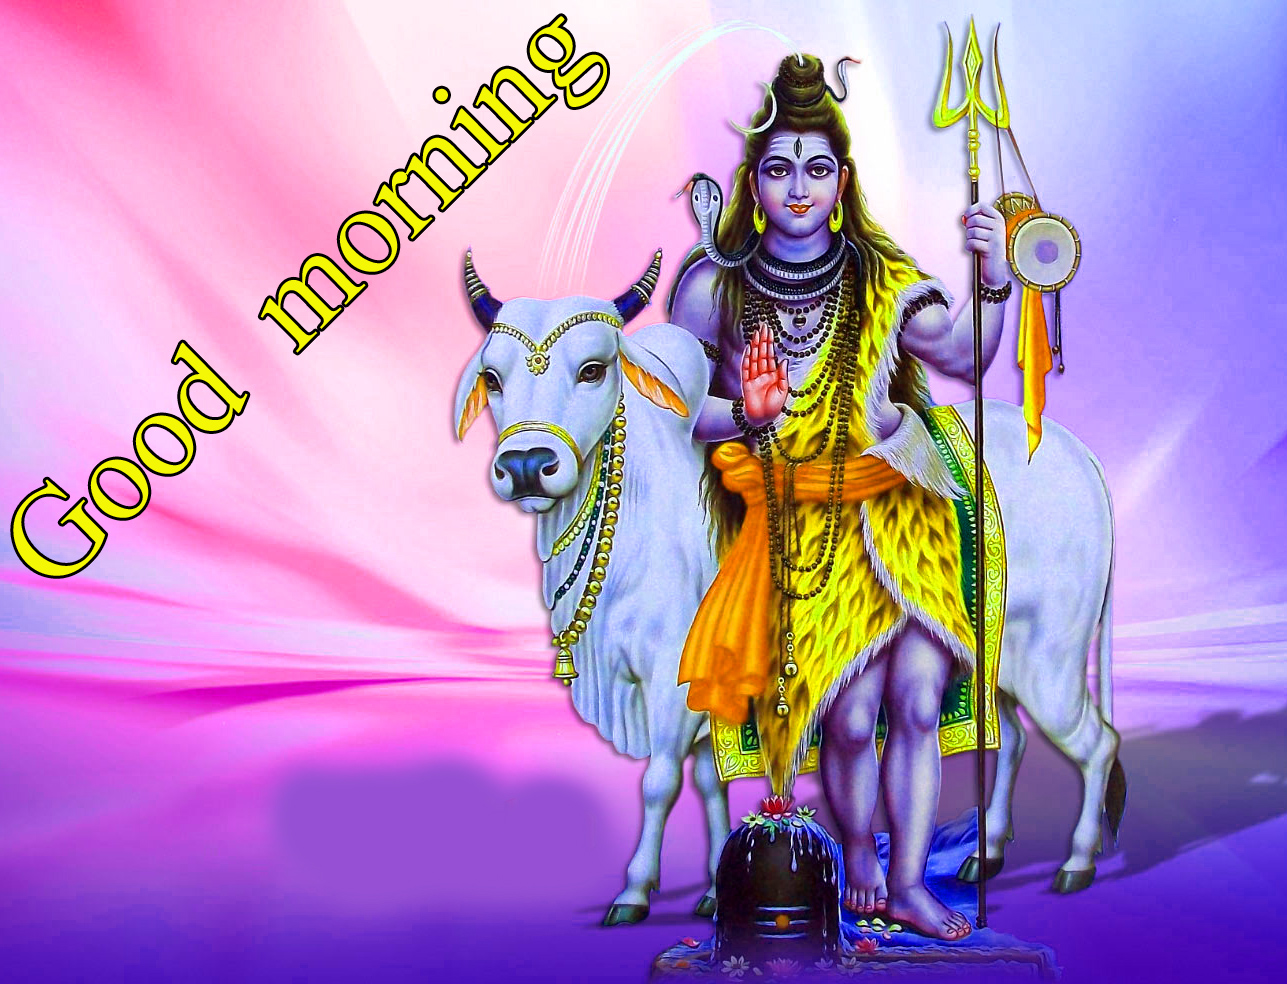 LORD SHIVA GOOD MORNING WISHES IMAGES PHOTO FOR FACEBOOK